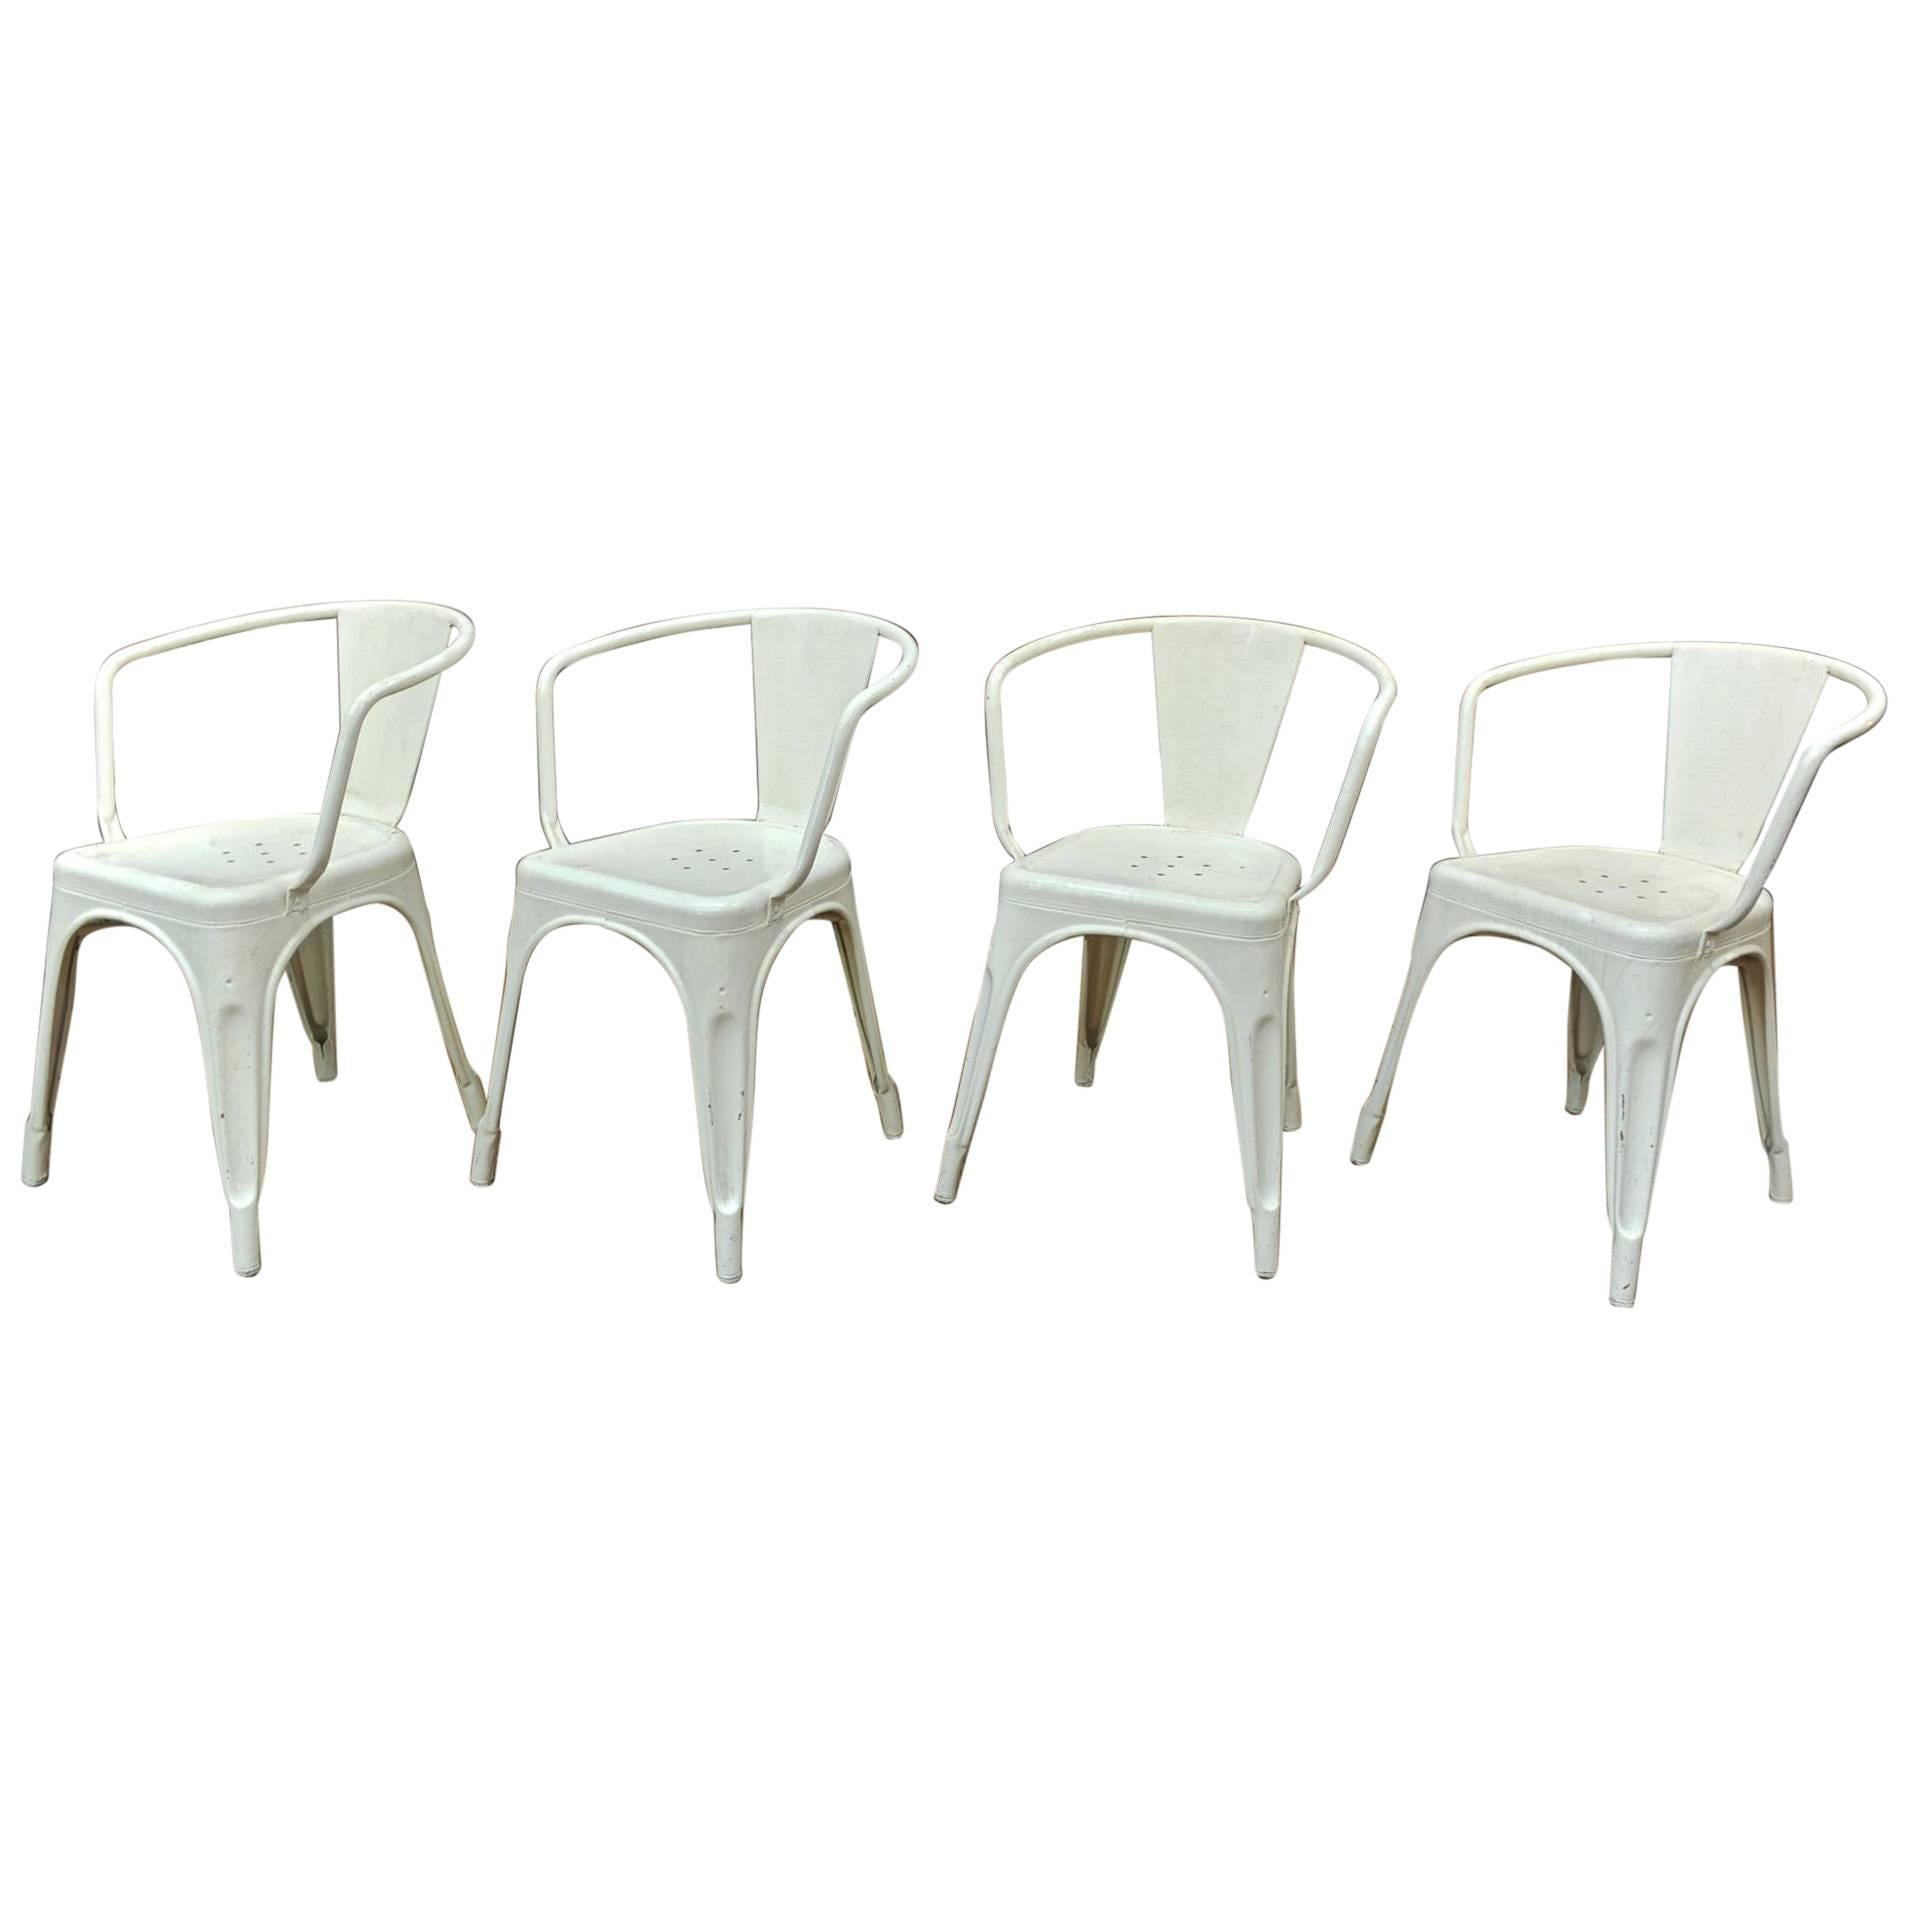 Set Of Four Iron Vintage White Color Iron Tolix Chairs, Circa 1950 For Sale